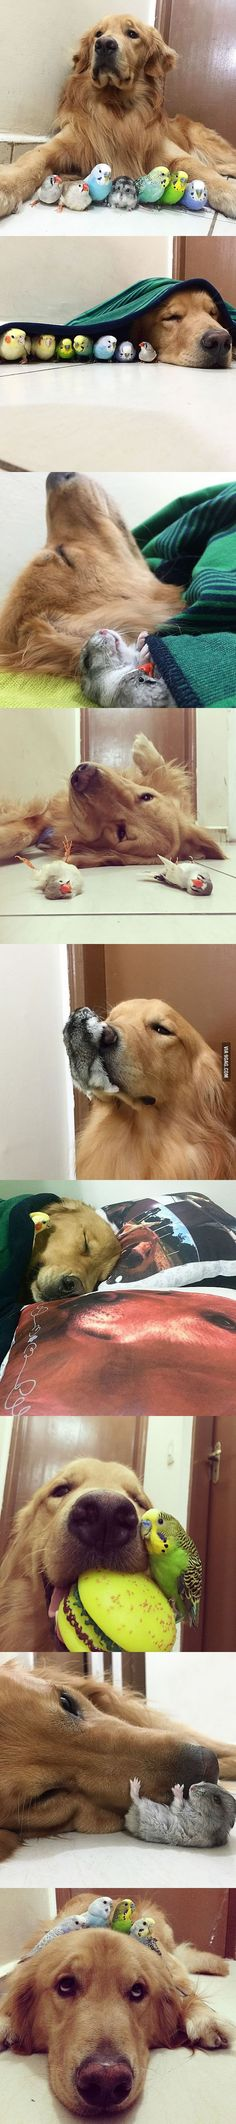 dog-birds-hamster-friends-9gag-1